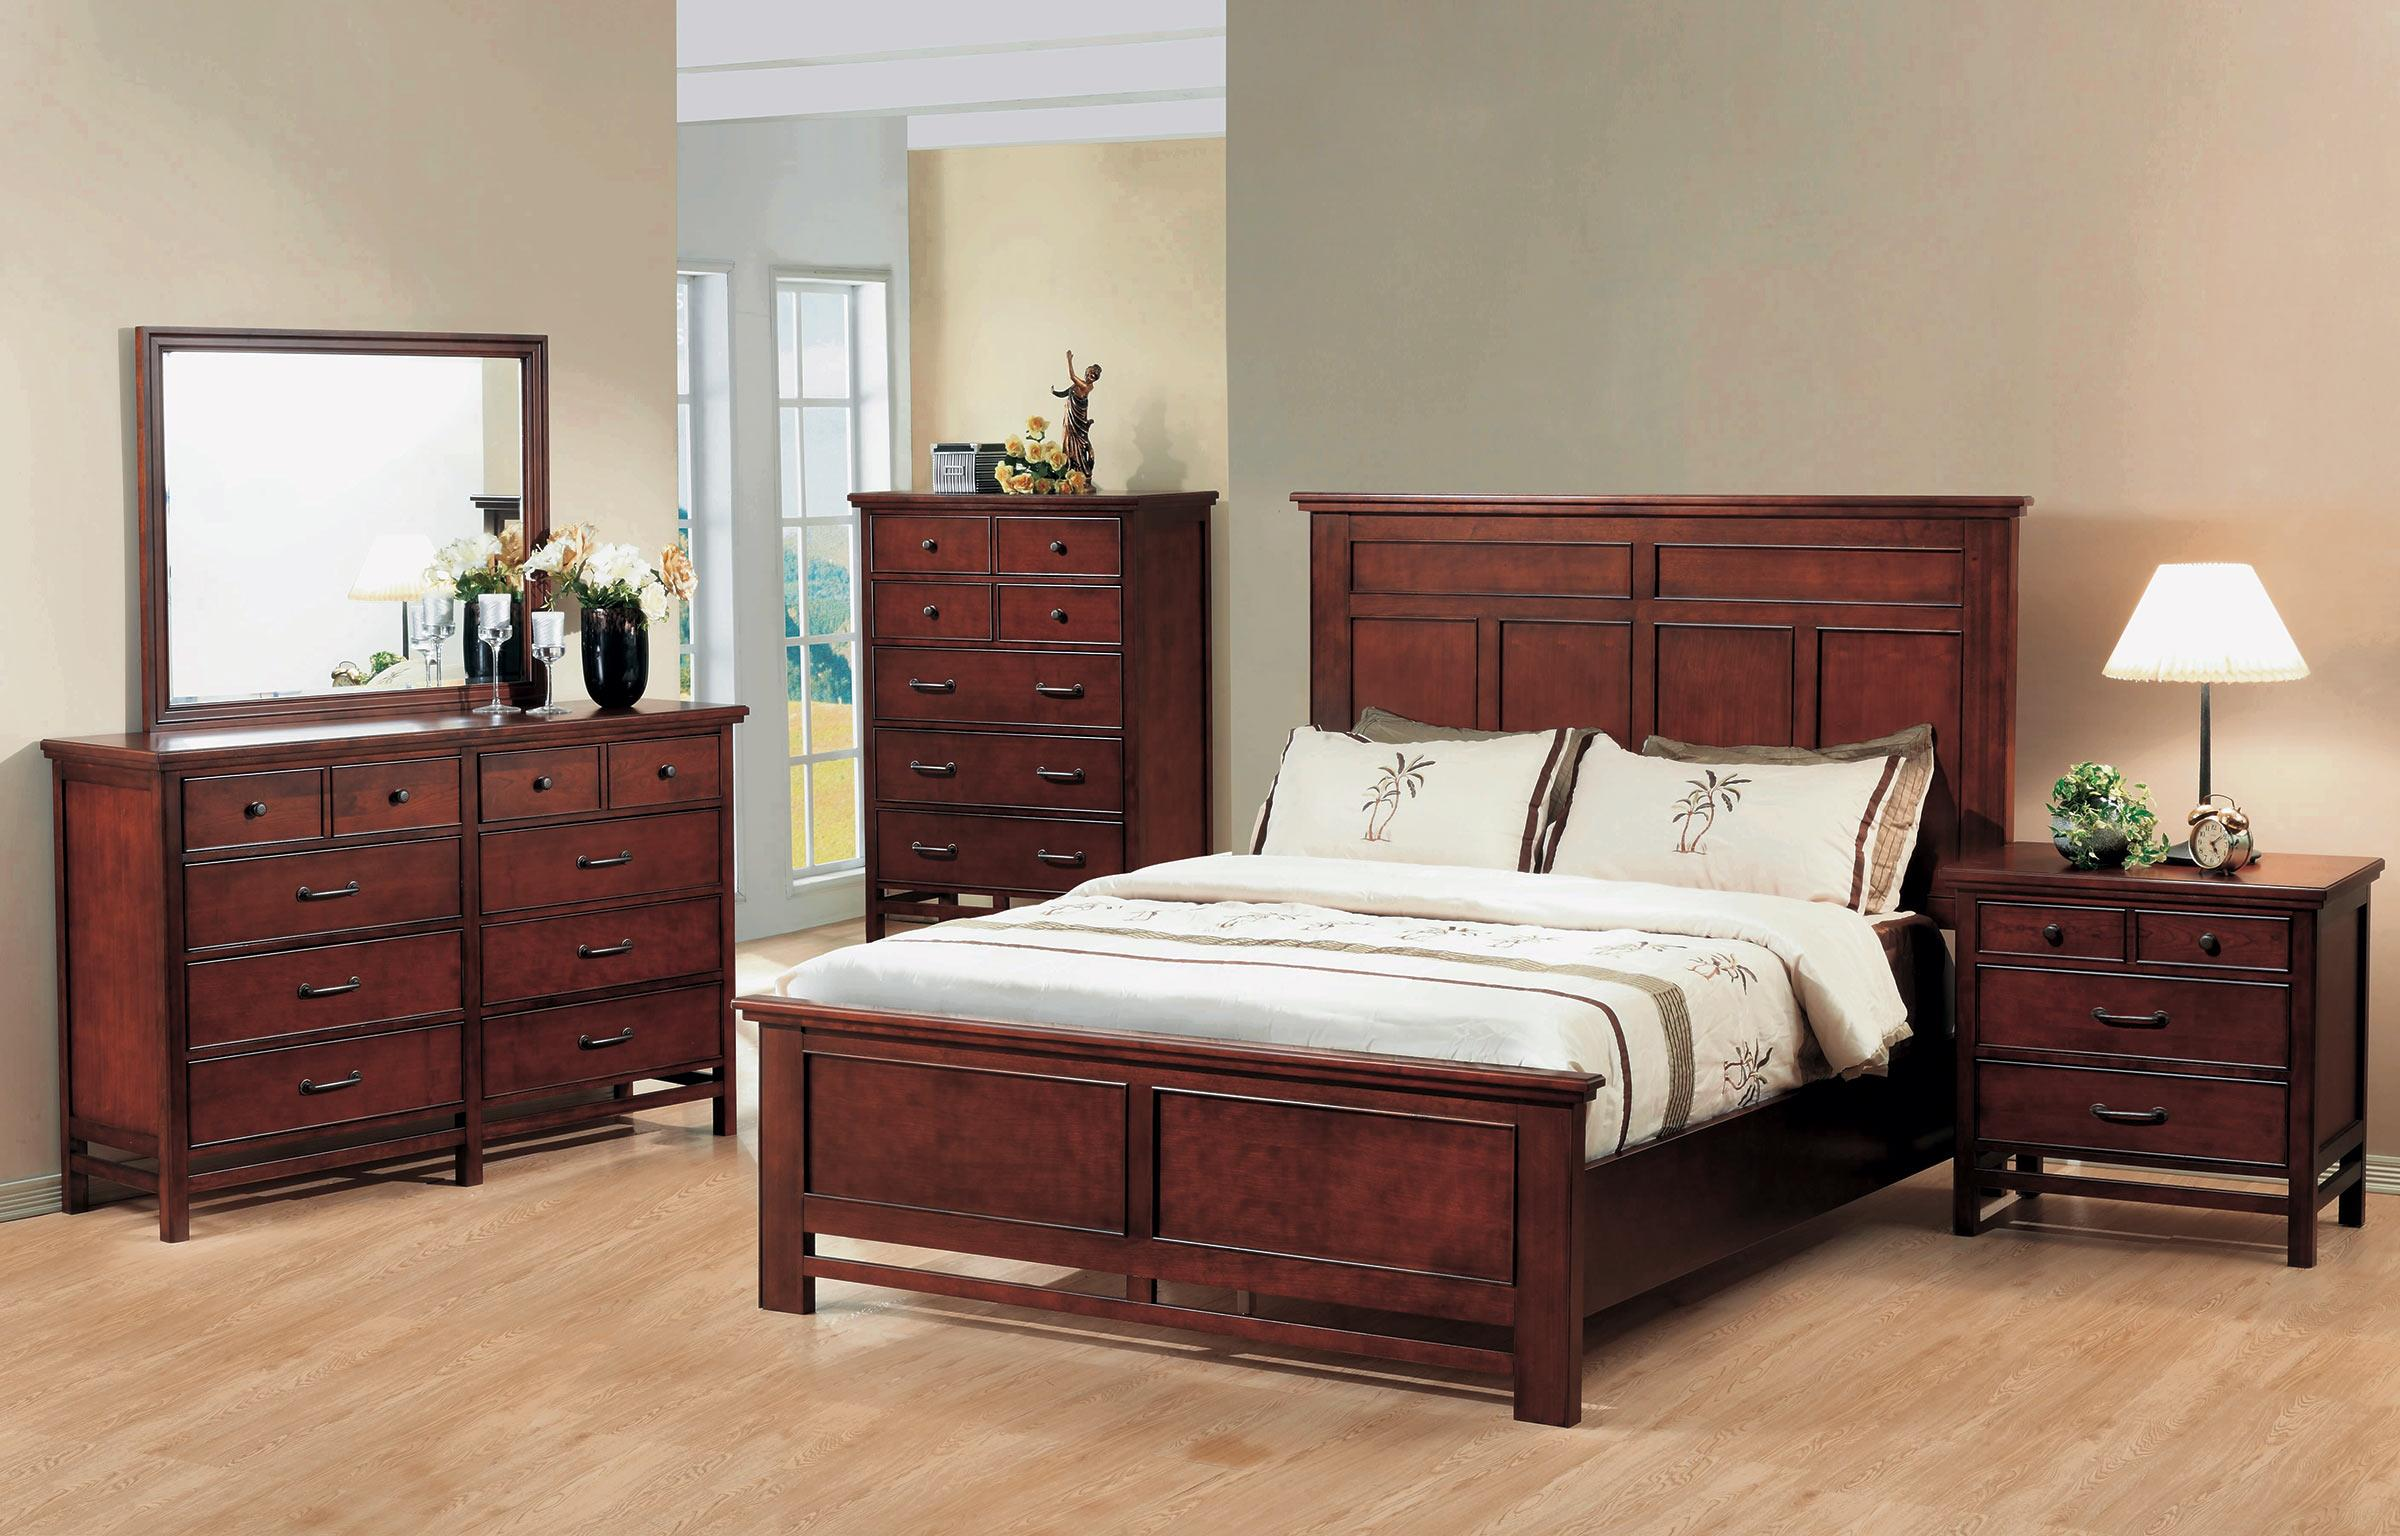 Winners Only Willow Creek California King Bedroom Group - Item Number: BW CK Bedroom Group 1